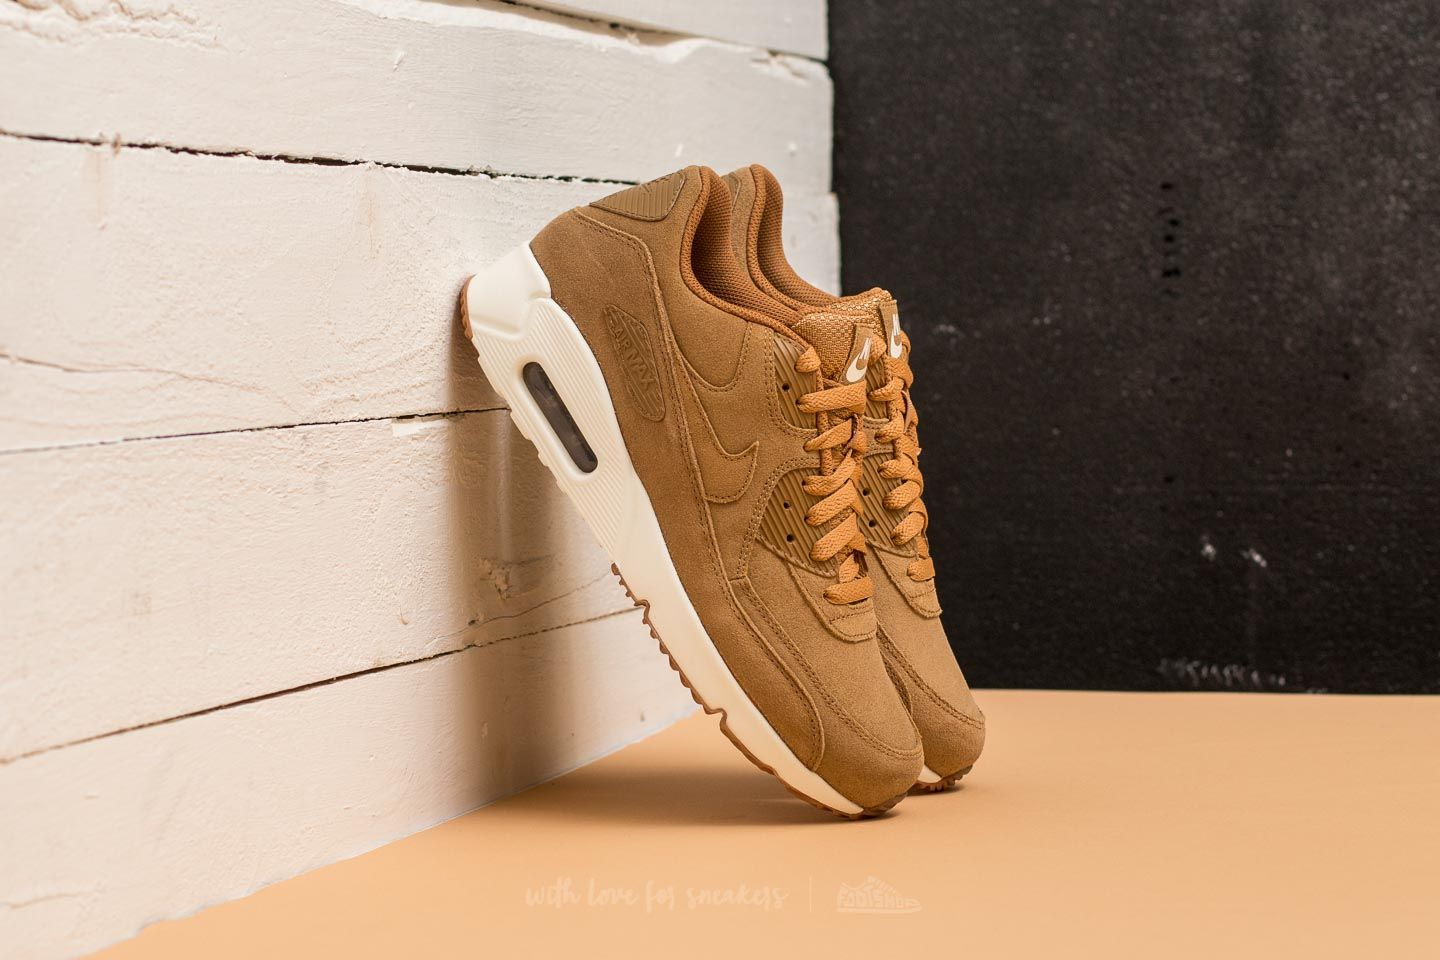 1795d0464c Nike Air Max 90 Ultra 2.0 LTR Flax/ Flax-Sail-Gum Med Brown ...